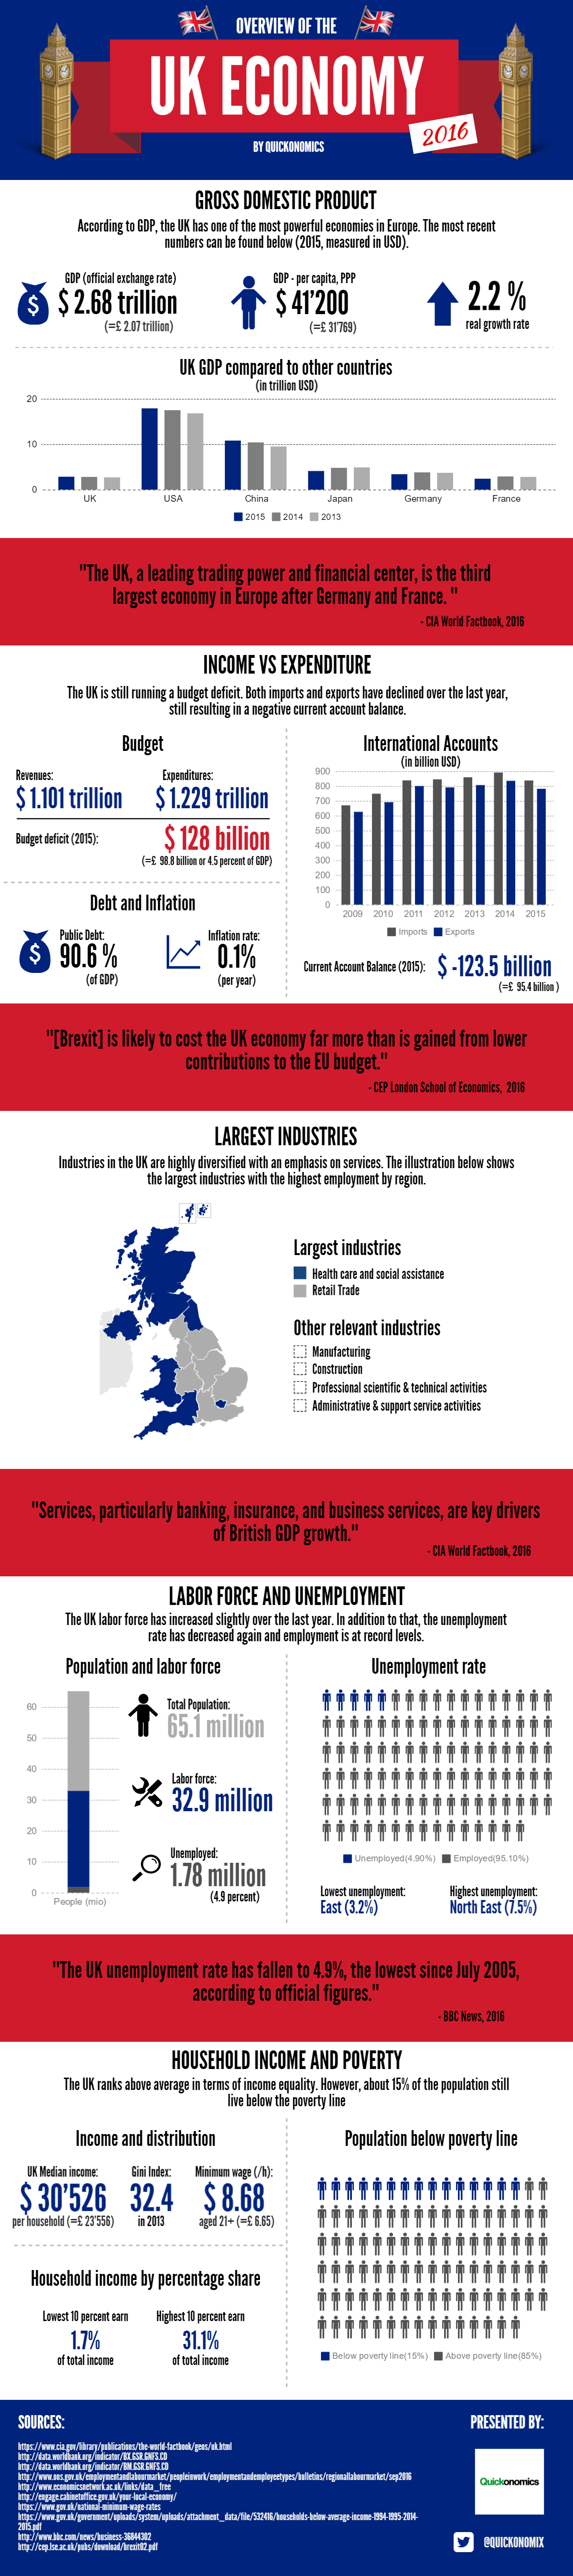 Overview of the UK Economy 2016